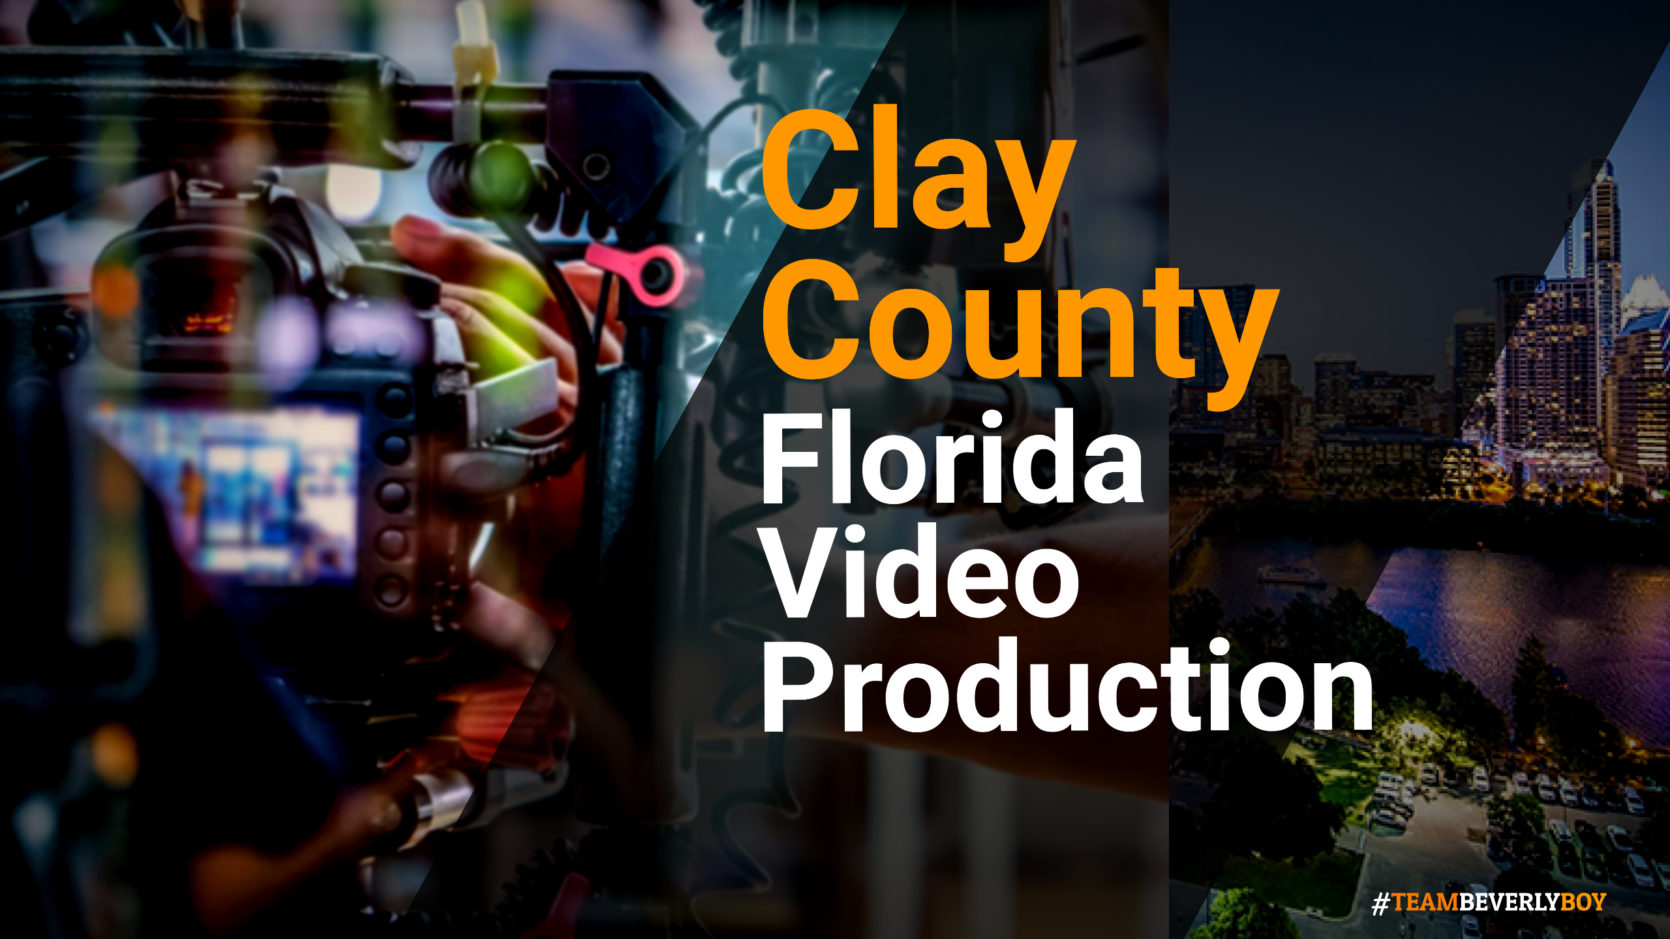 Clay County Video Production